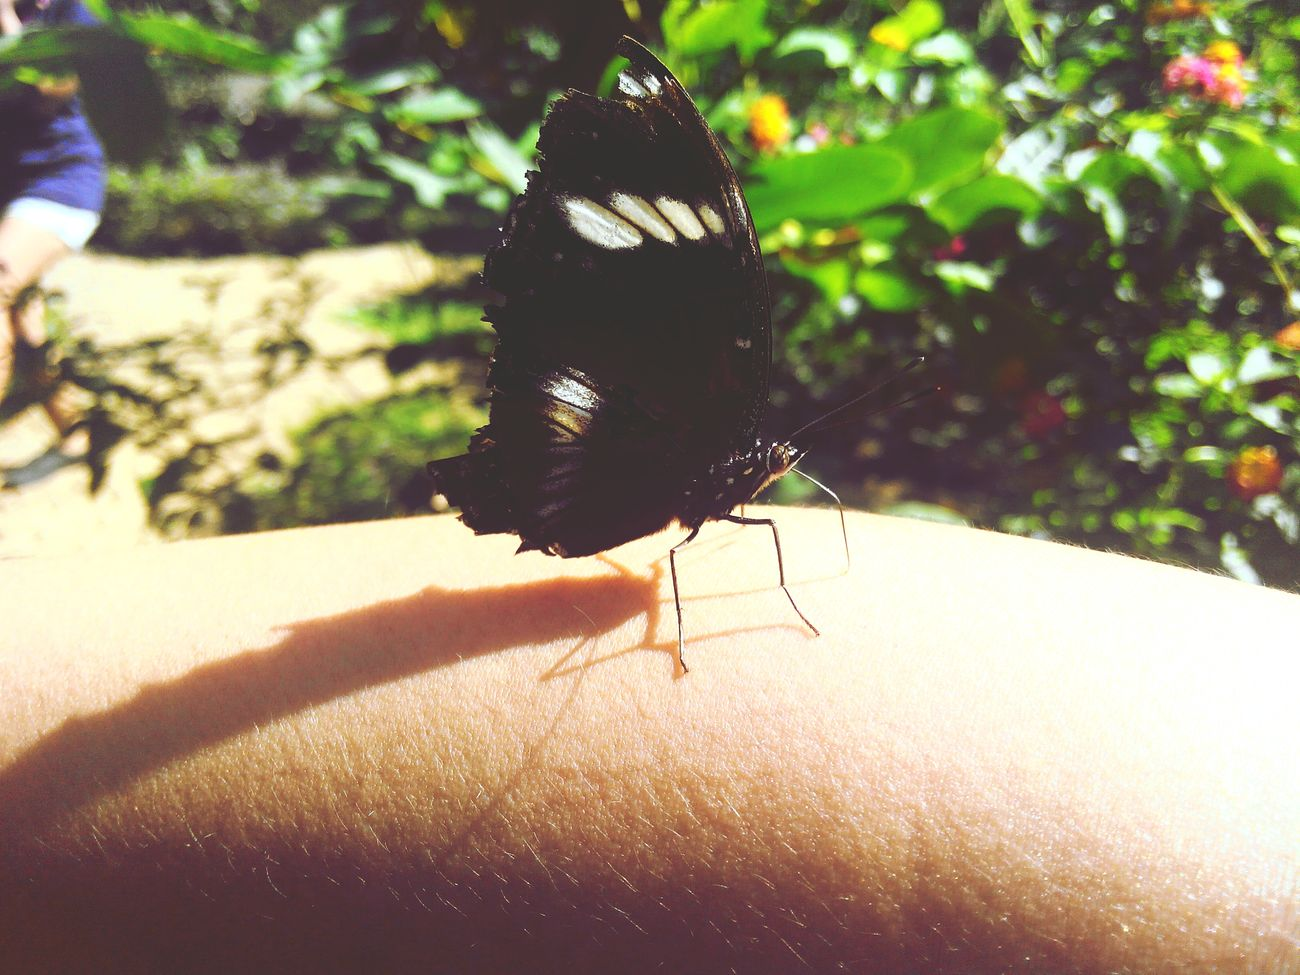 bam! perfect landing beautiful.. Butterfly ❤ Butterfly Collection Butterfly Garden Photography In Motion Nature Photography EyeEm Nature Lover EyeemPhilippines